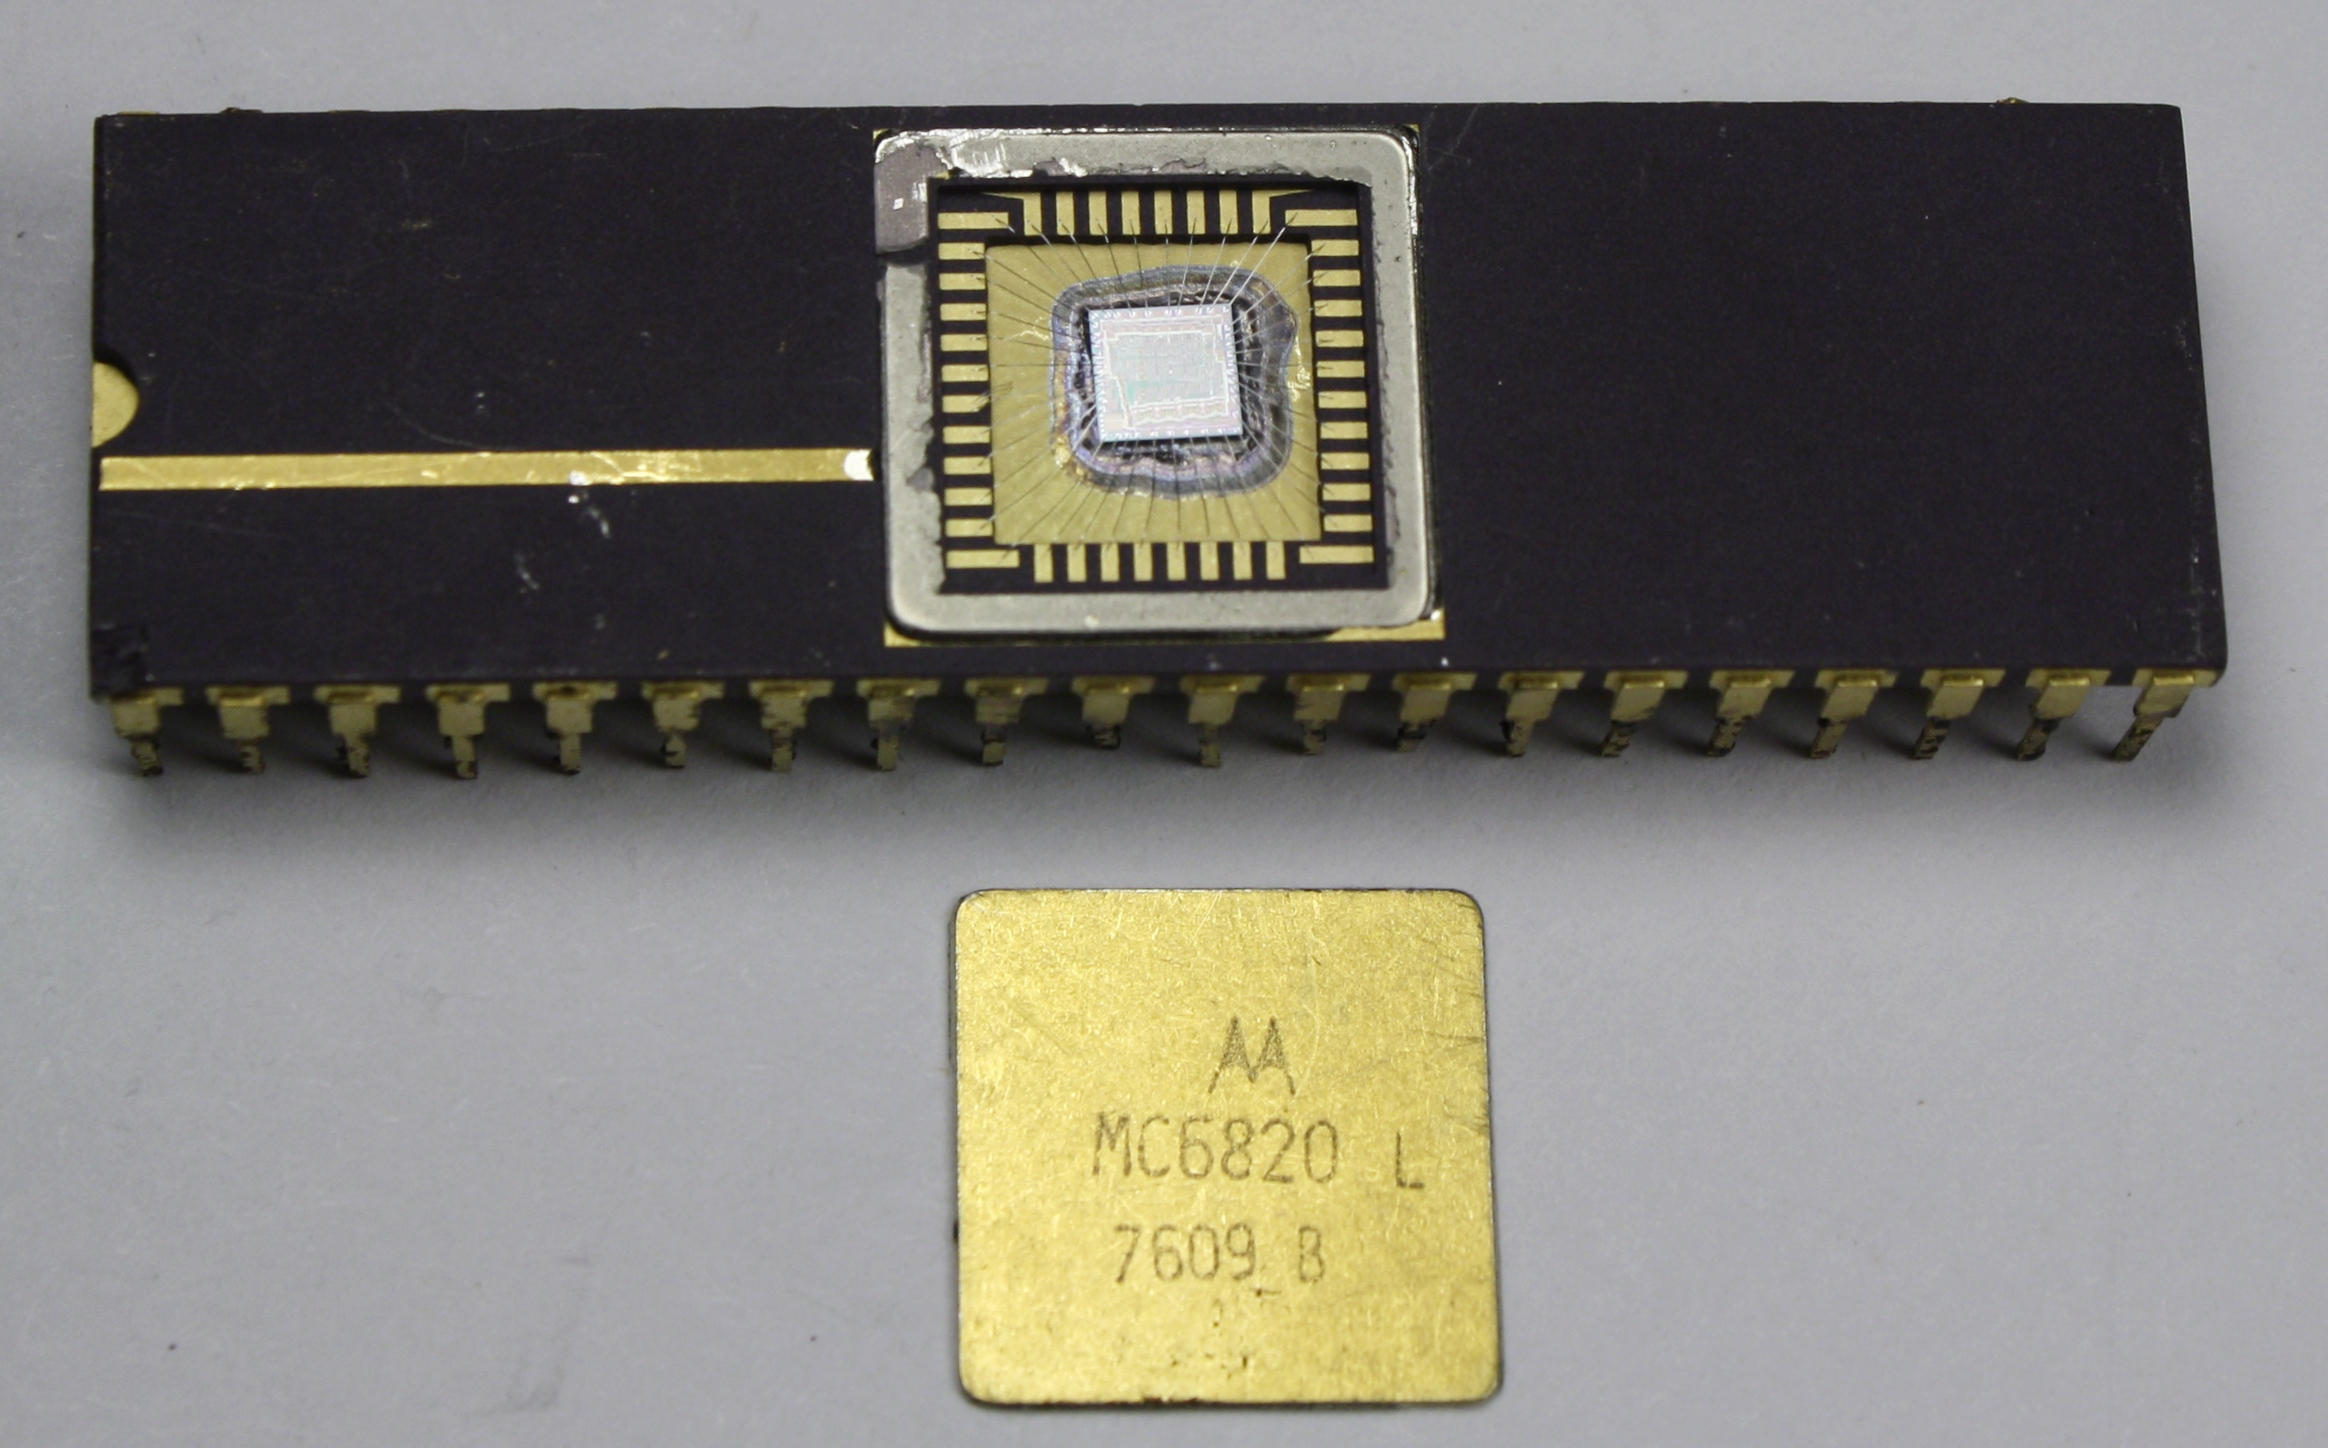 Integrated Circuit Creating High Resolution Die Photos With Hugin Or Ice The Mc6820 Chip Metal Lid Popped Off To Reveal Silicon